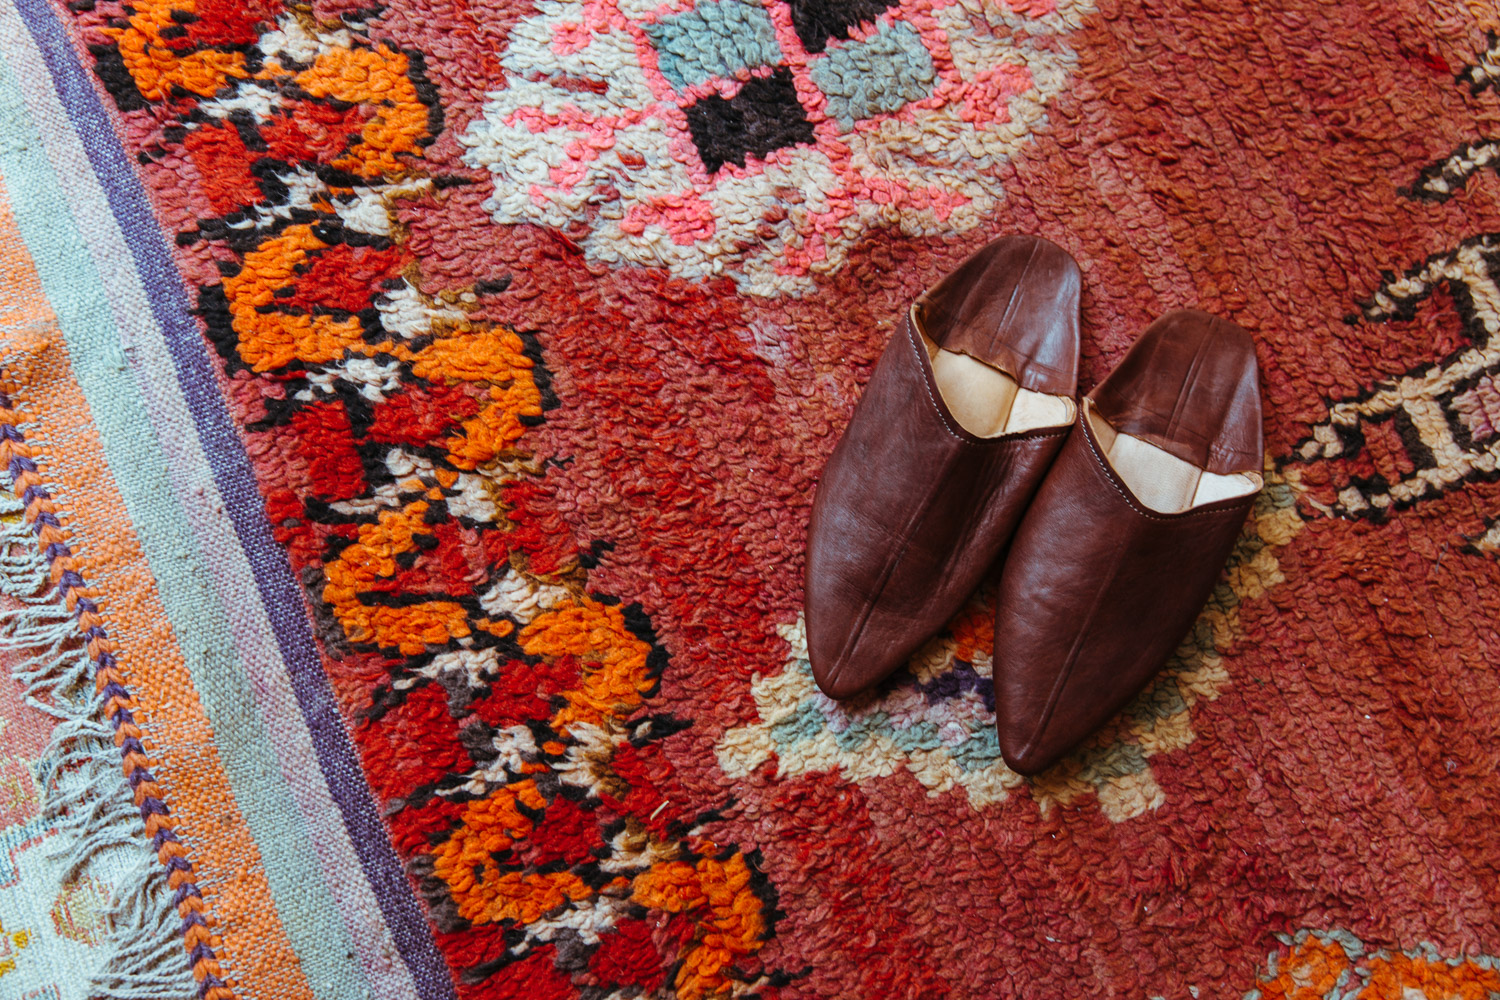 Moroccan leather slippers sourced from Morocco—naturally—by Andy Spade and team.